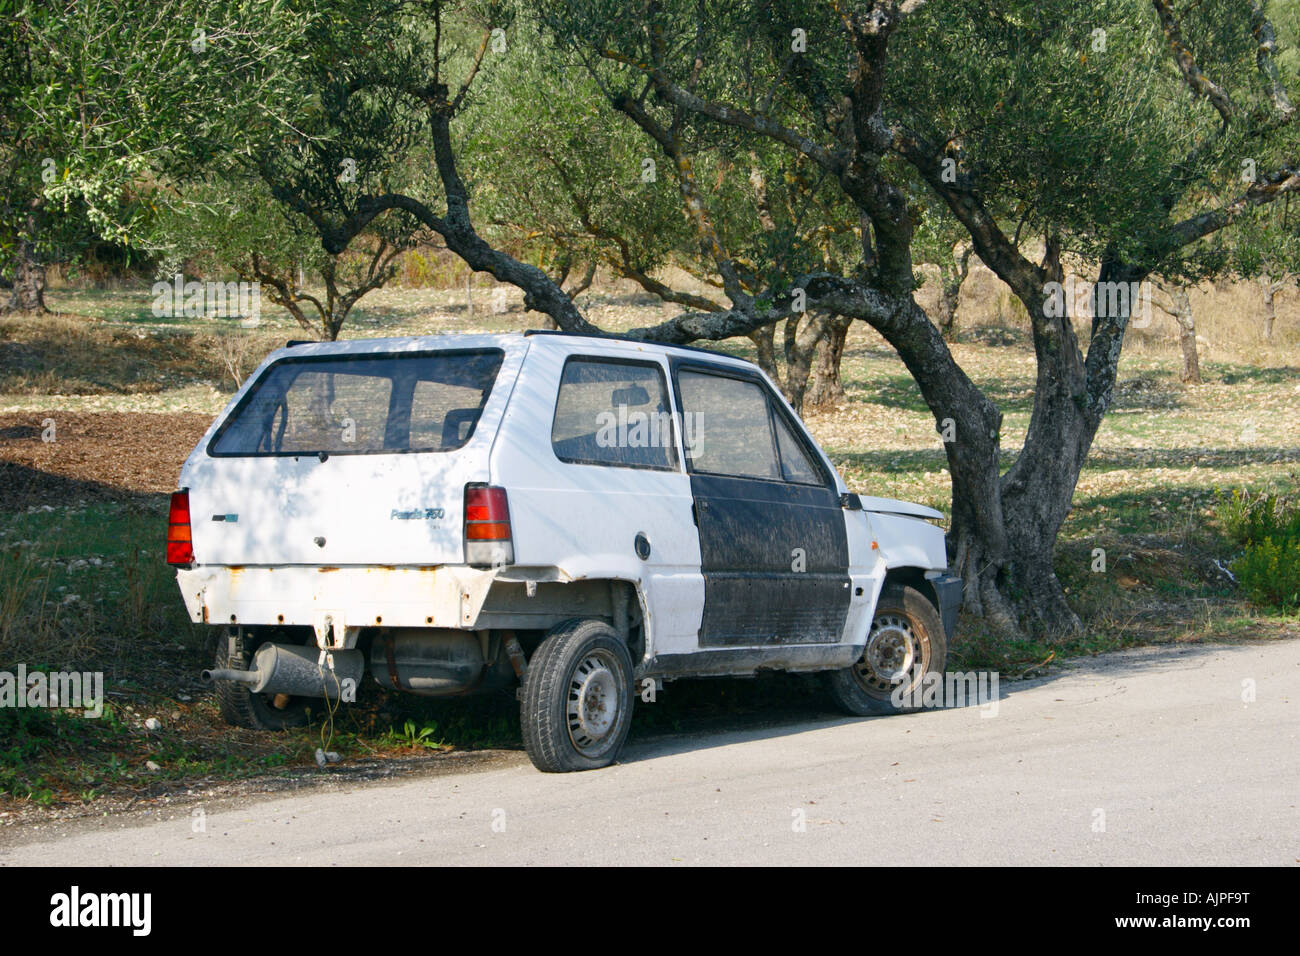 An abandon car next to an Olive trees, Zakynthos, Greece. - Stock Image